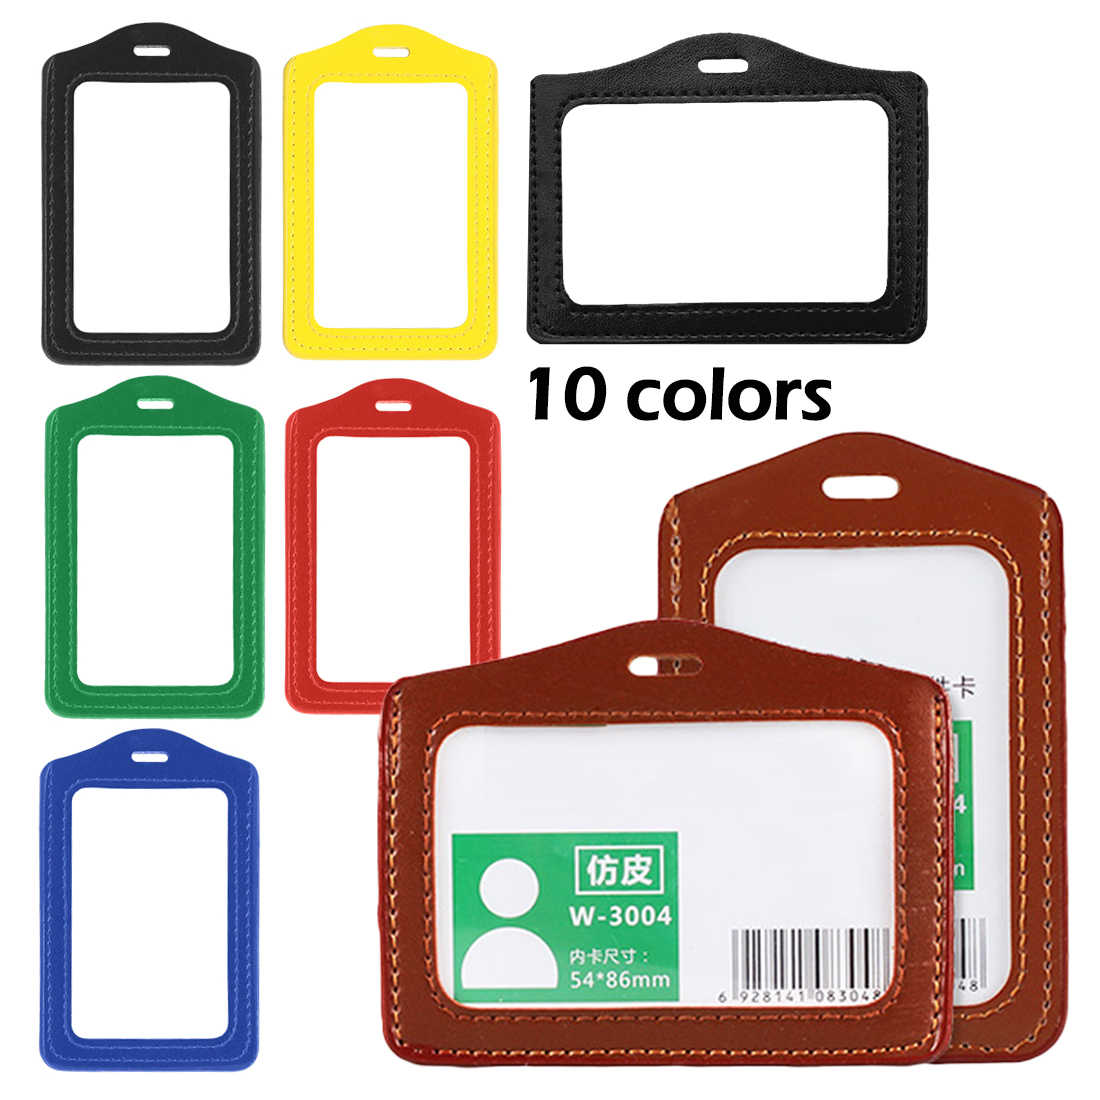 1PCS PU Leather ID Badge Case Clear and Color Border Lanyard Holes Bank Credit Card Holders ID Badge Holders Accessories